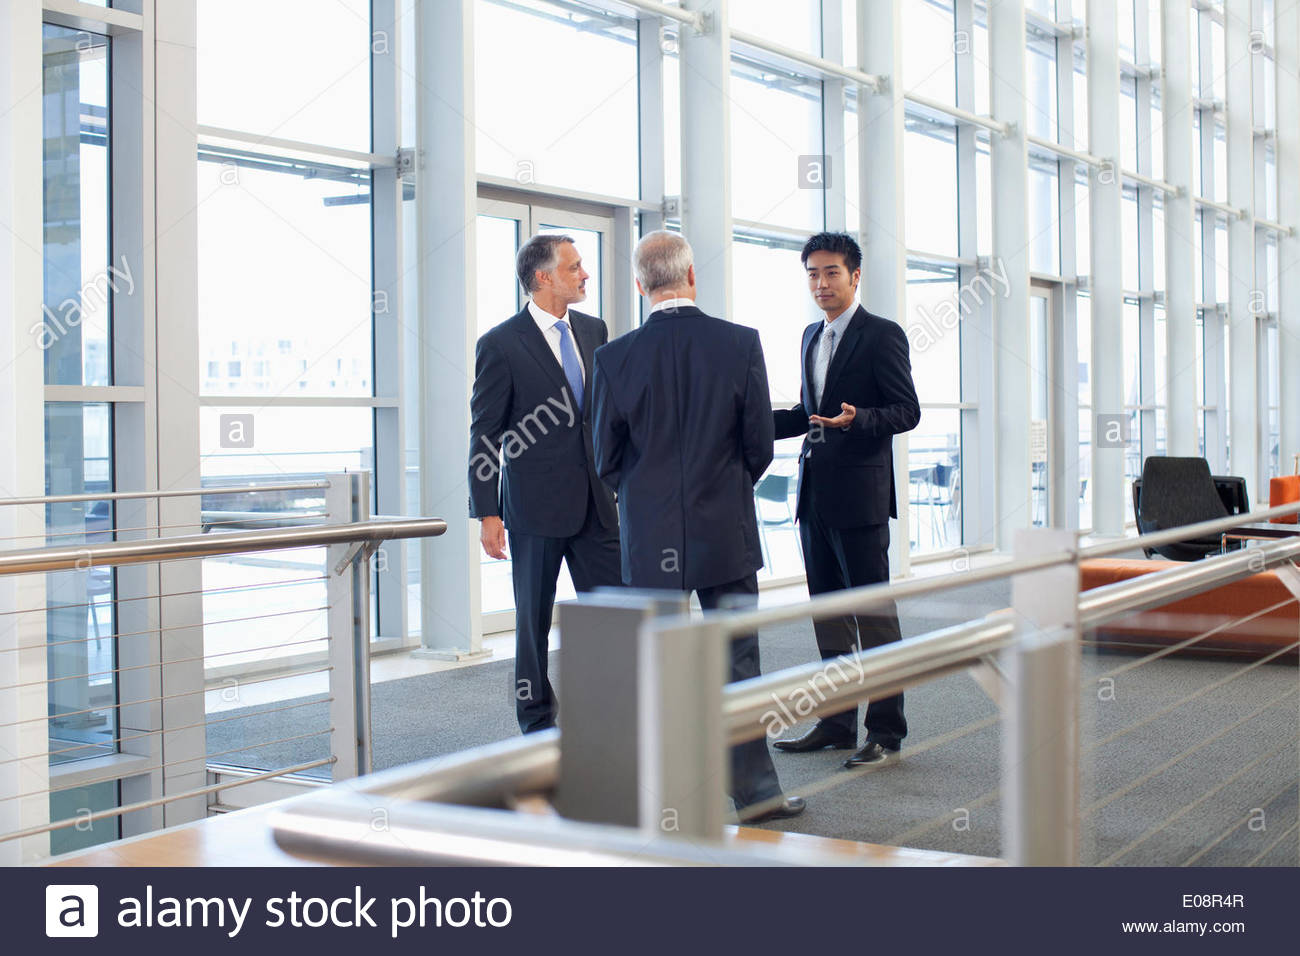 Business people meeting at window in office lobby Photo Stock